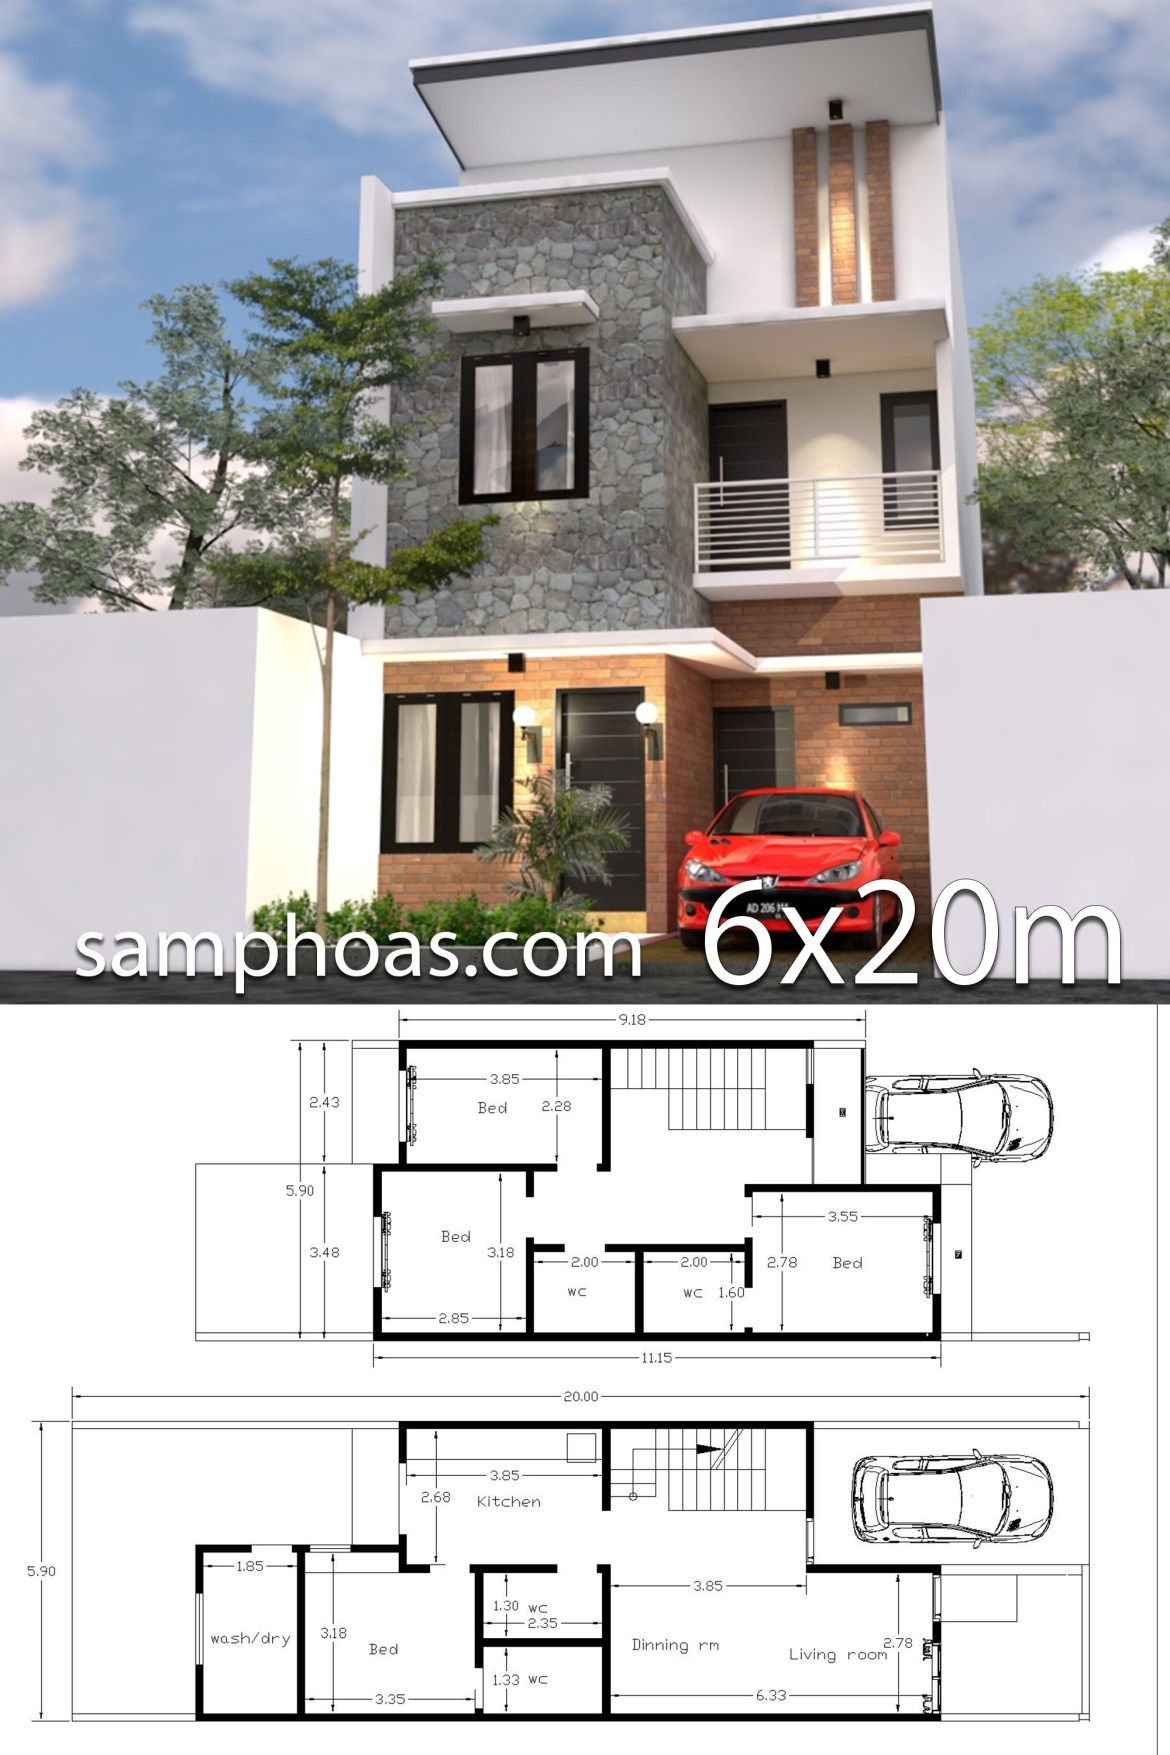 6x20m House Design 3d Plan With 4 Bedrooms Samphoas Plansearch Model House Plan Architect House Modern House Plans